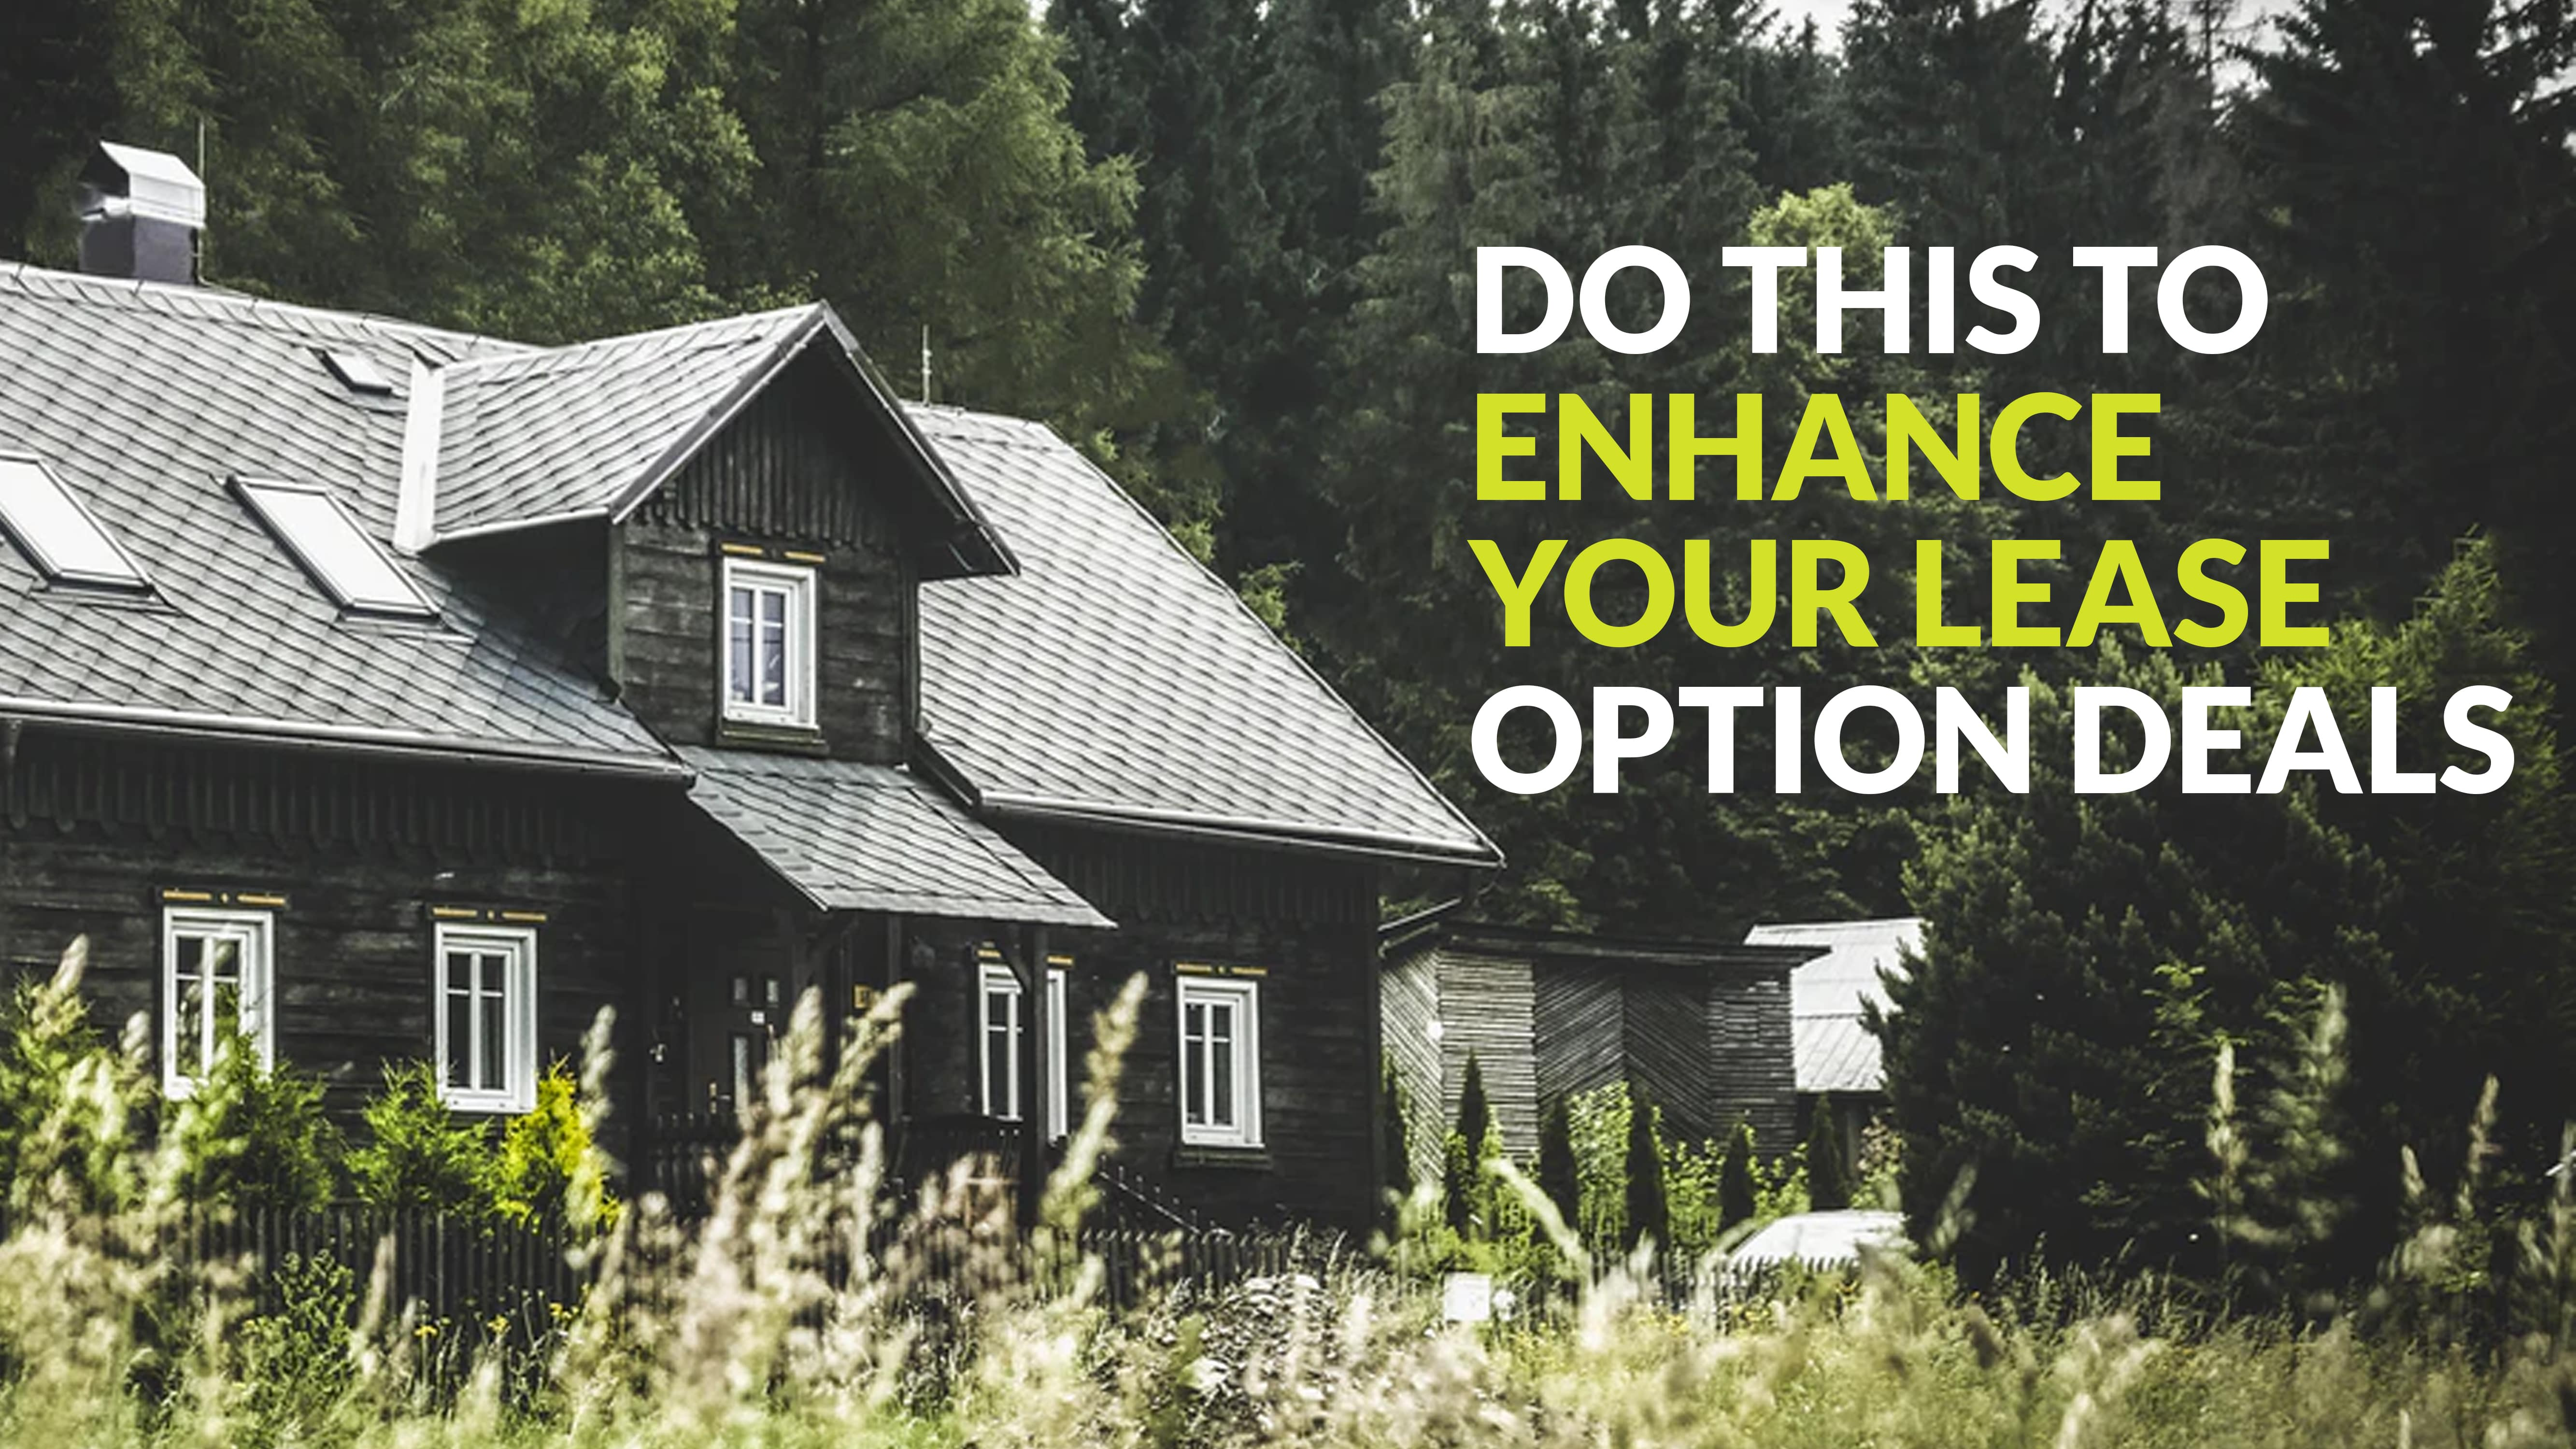 Do THIS to enhance your lease option deals